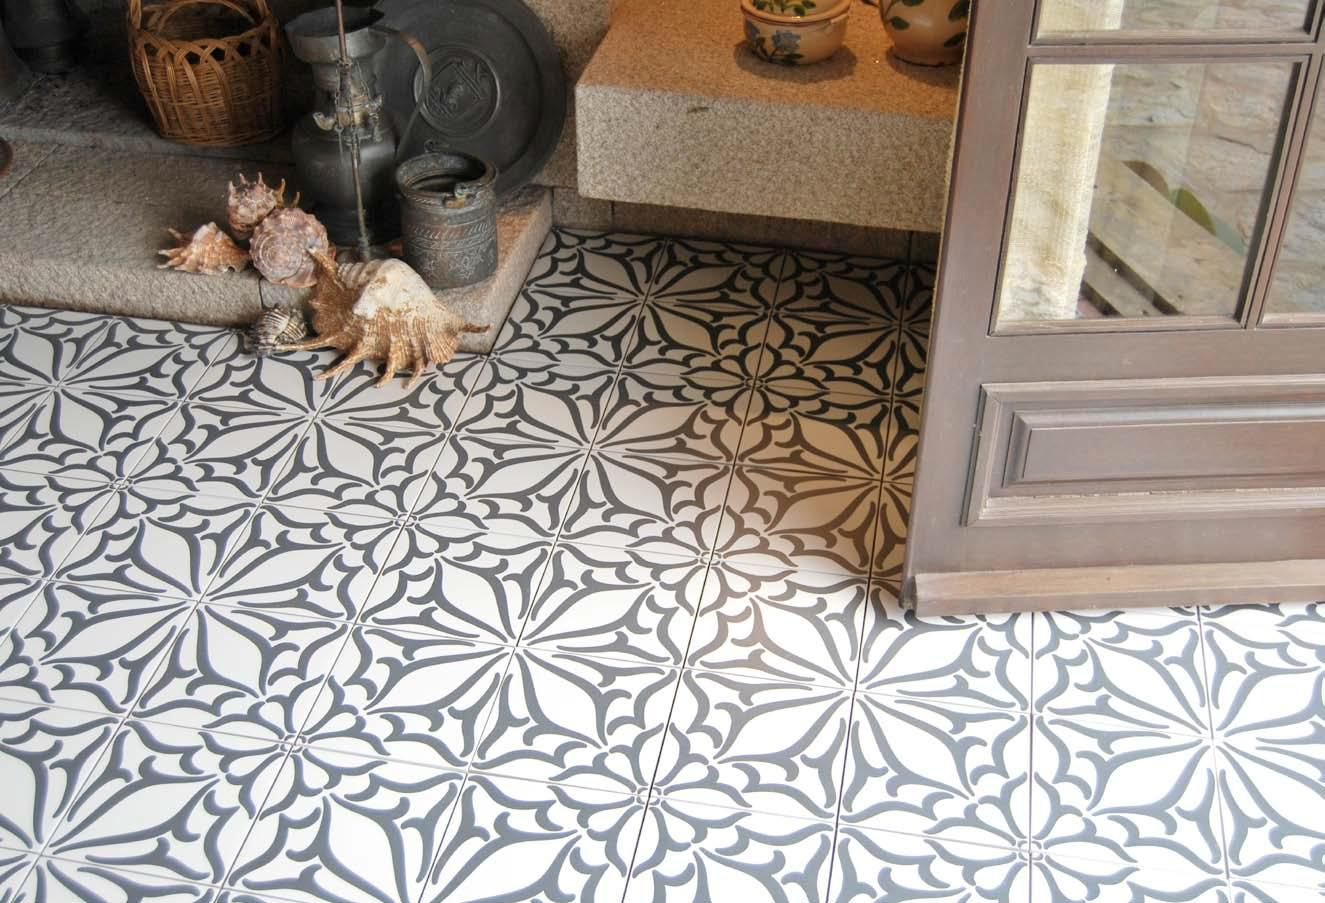 Carrelage aspect carreau ciment krocim decor classic noir for Carrelage ancien lille